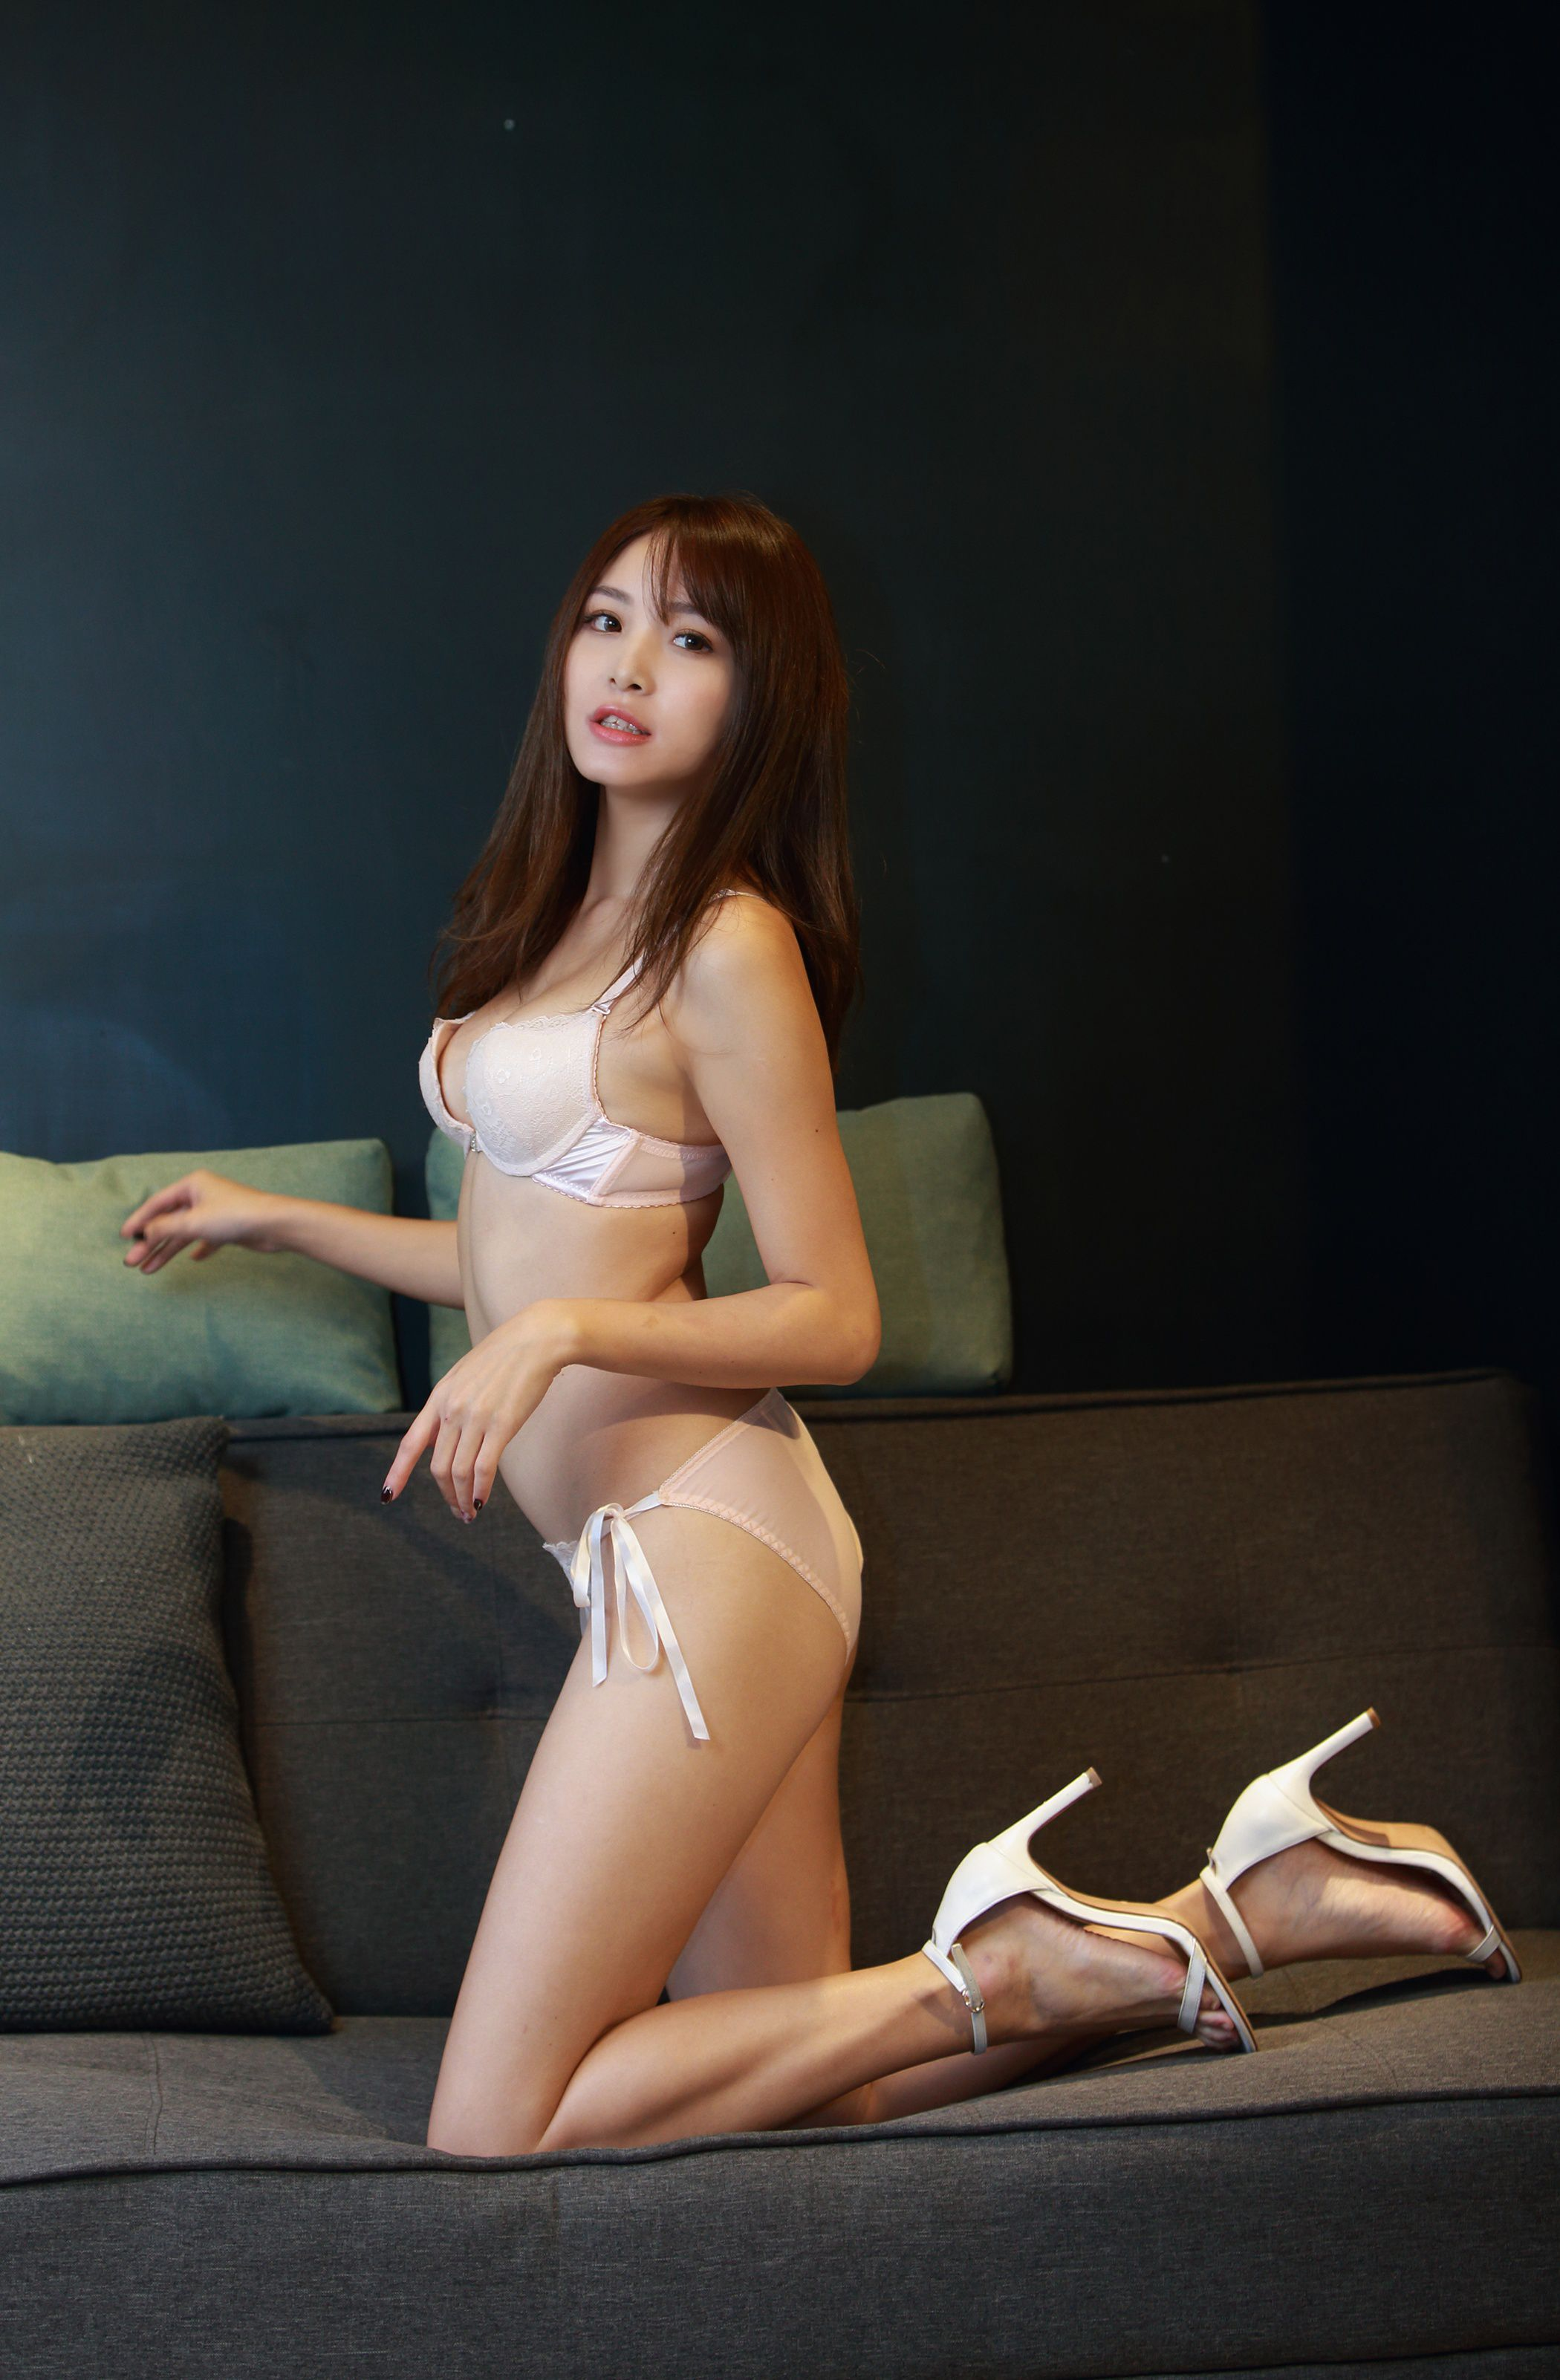 Taiwanese Model – Ash Ley – Sexy Girl and White Lingerie [131P] - 美女圖 -